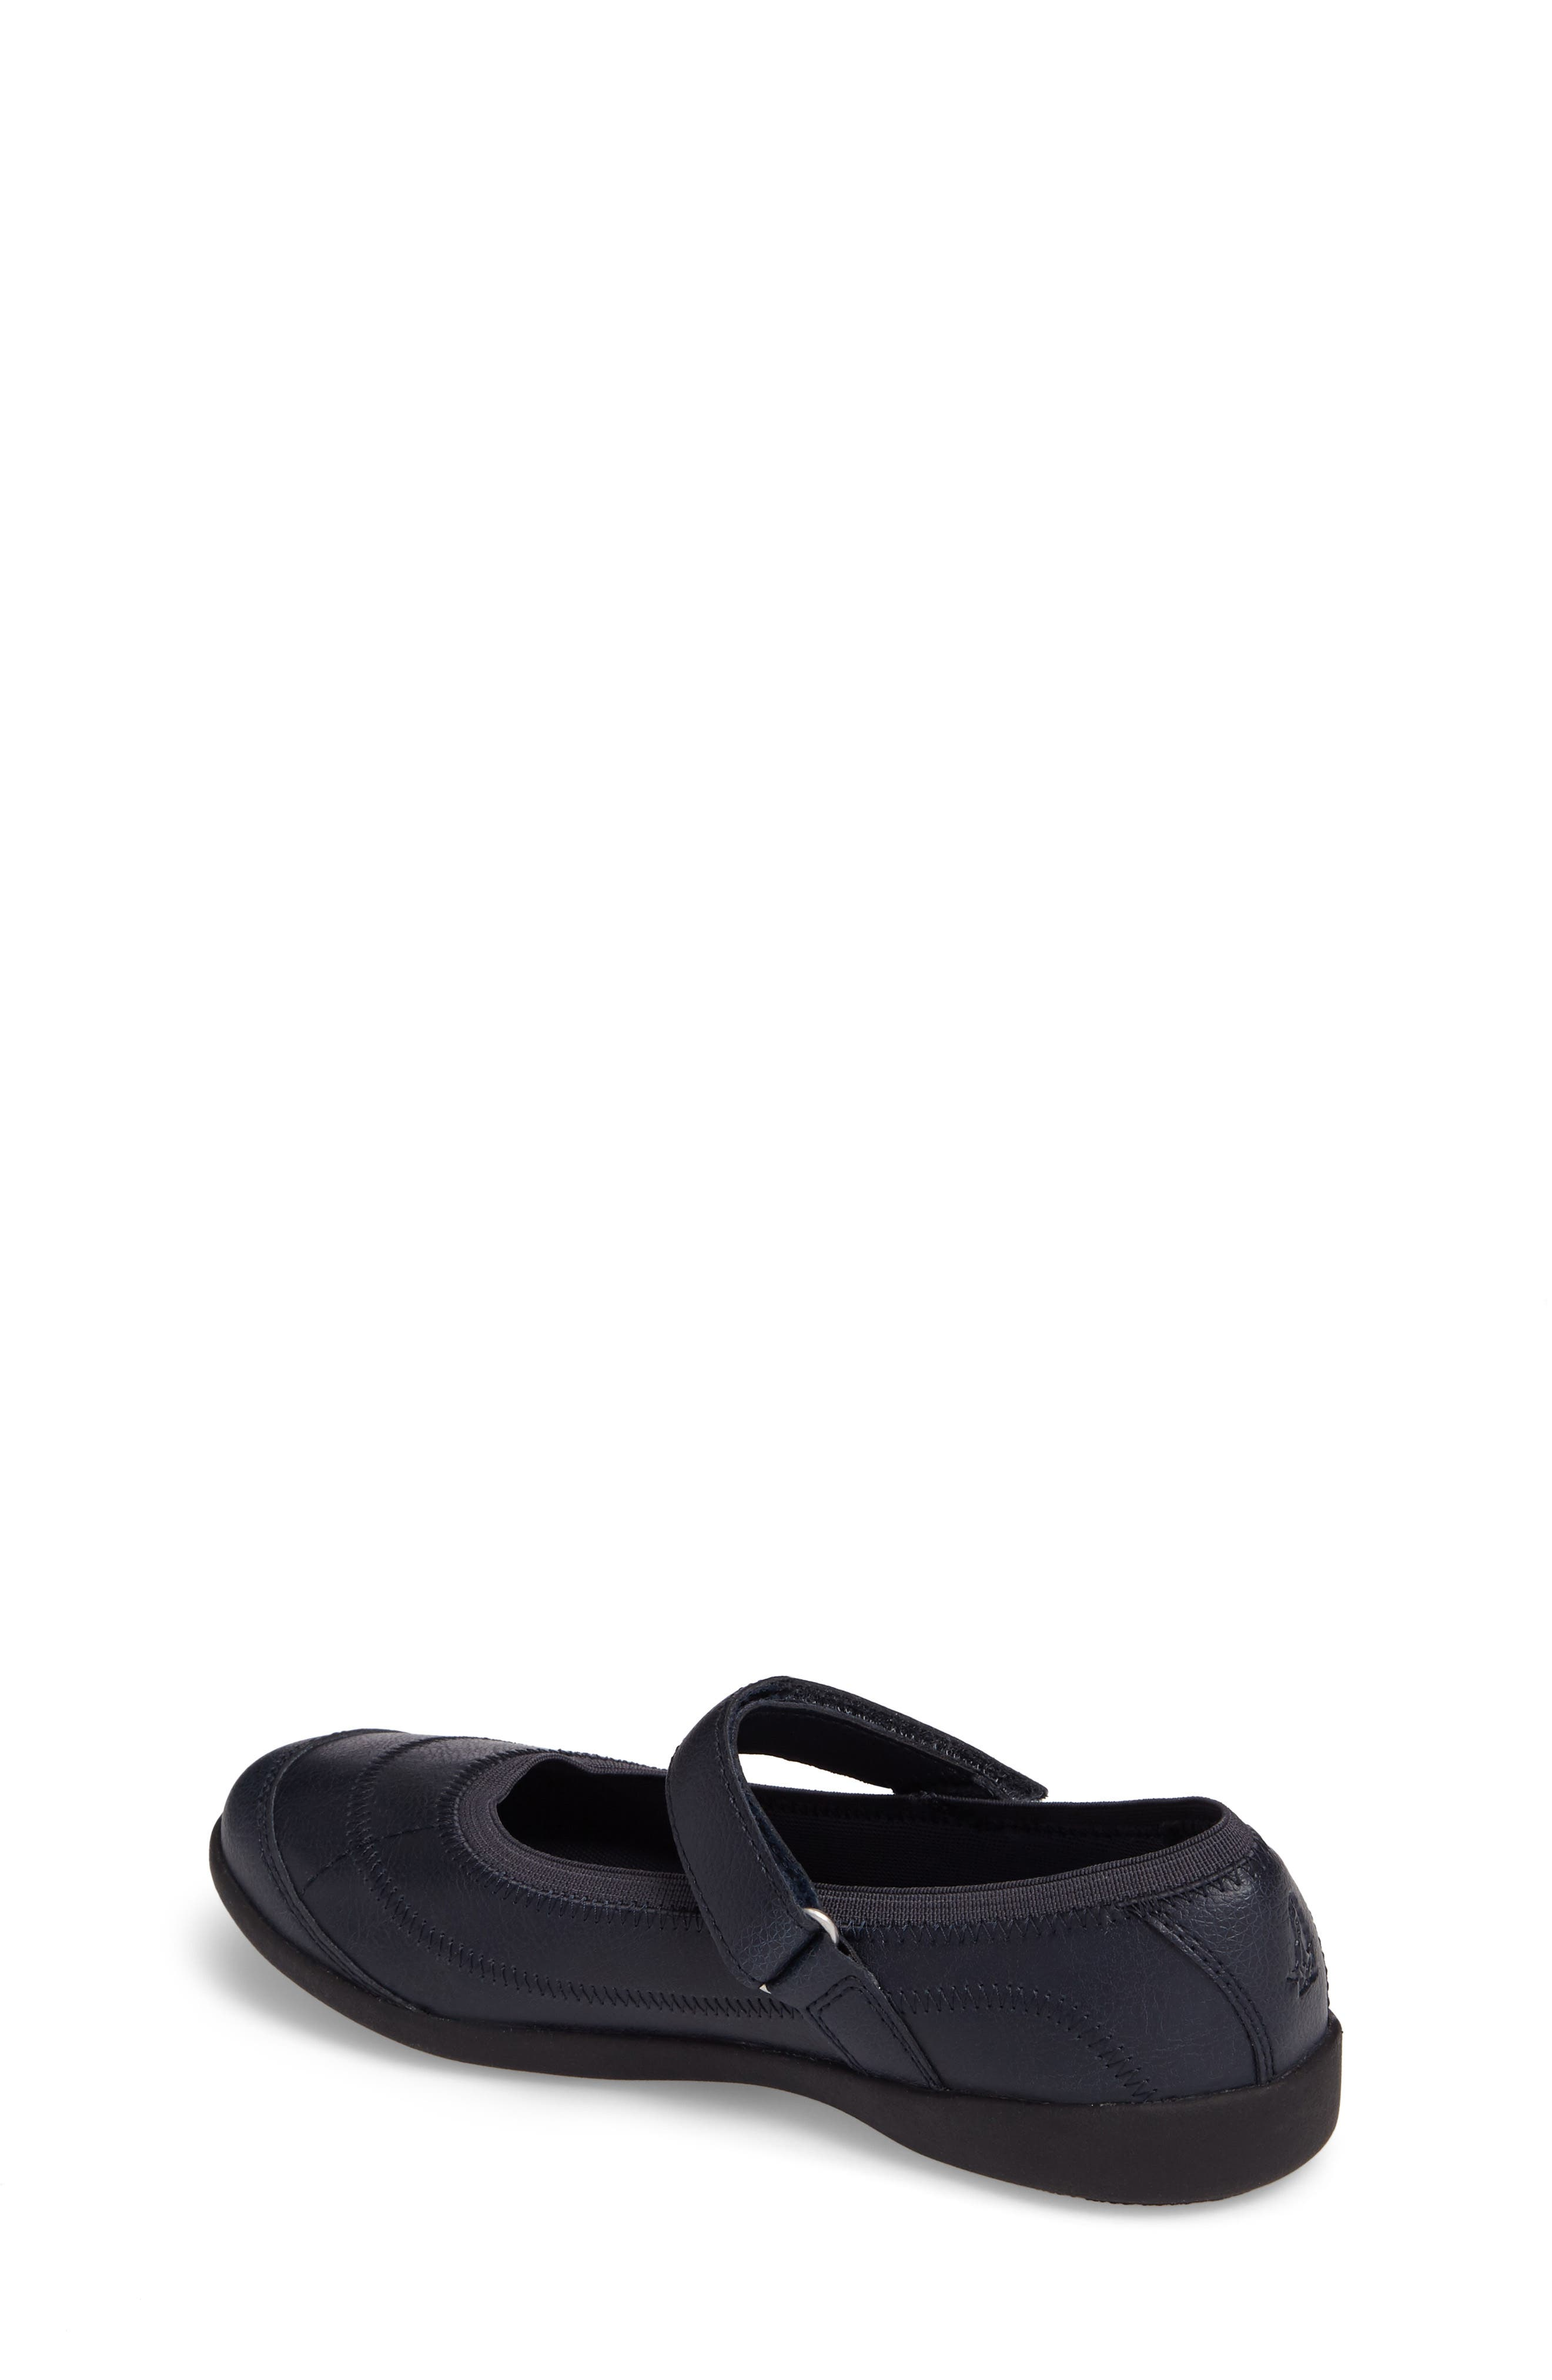 Reese Mary Jane Flat,                             Alternate thumbnail 2, color,                             NAVY LEATHER